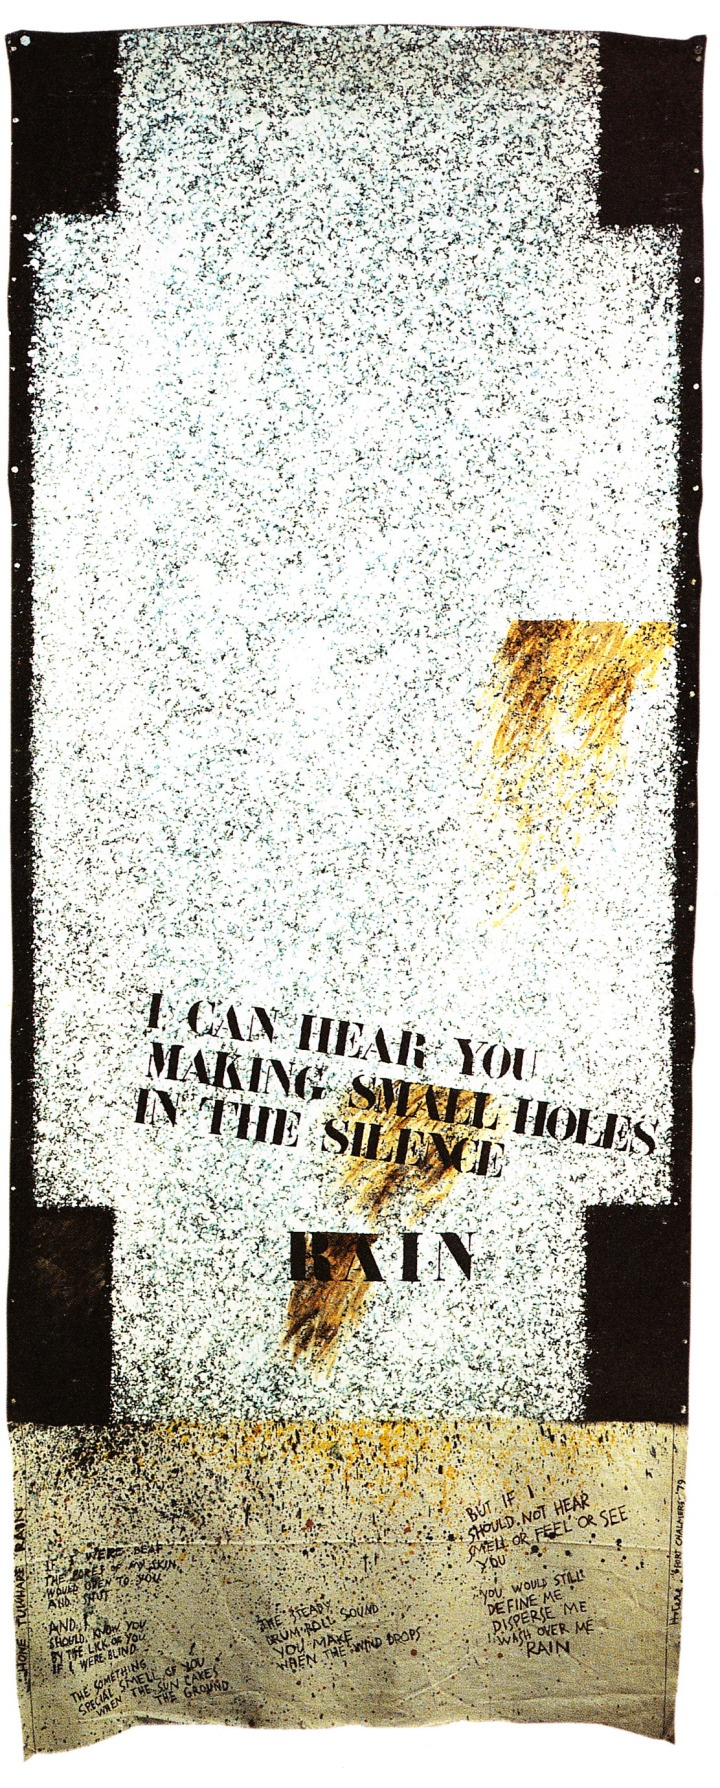 Rain, 1979 by Ralph Hotere. The use of stencil for the text